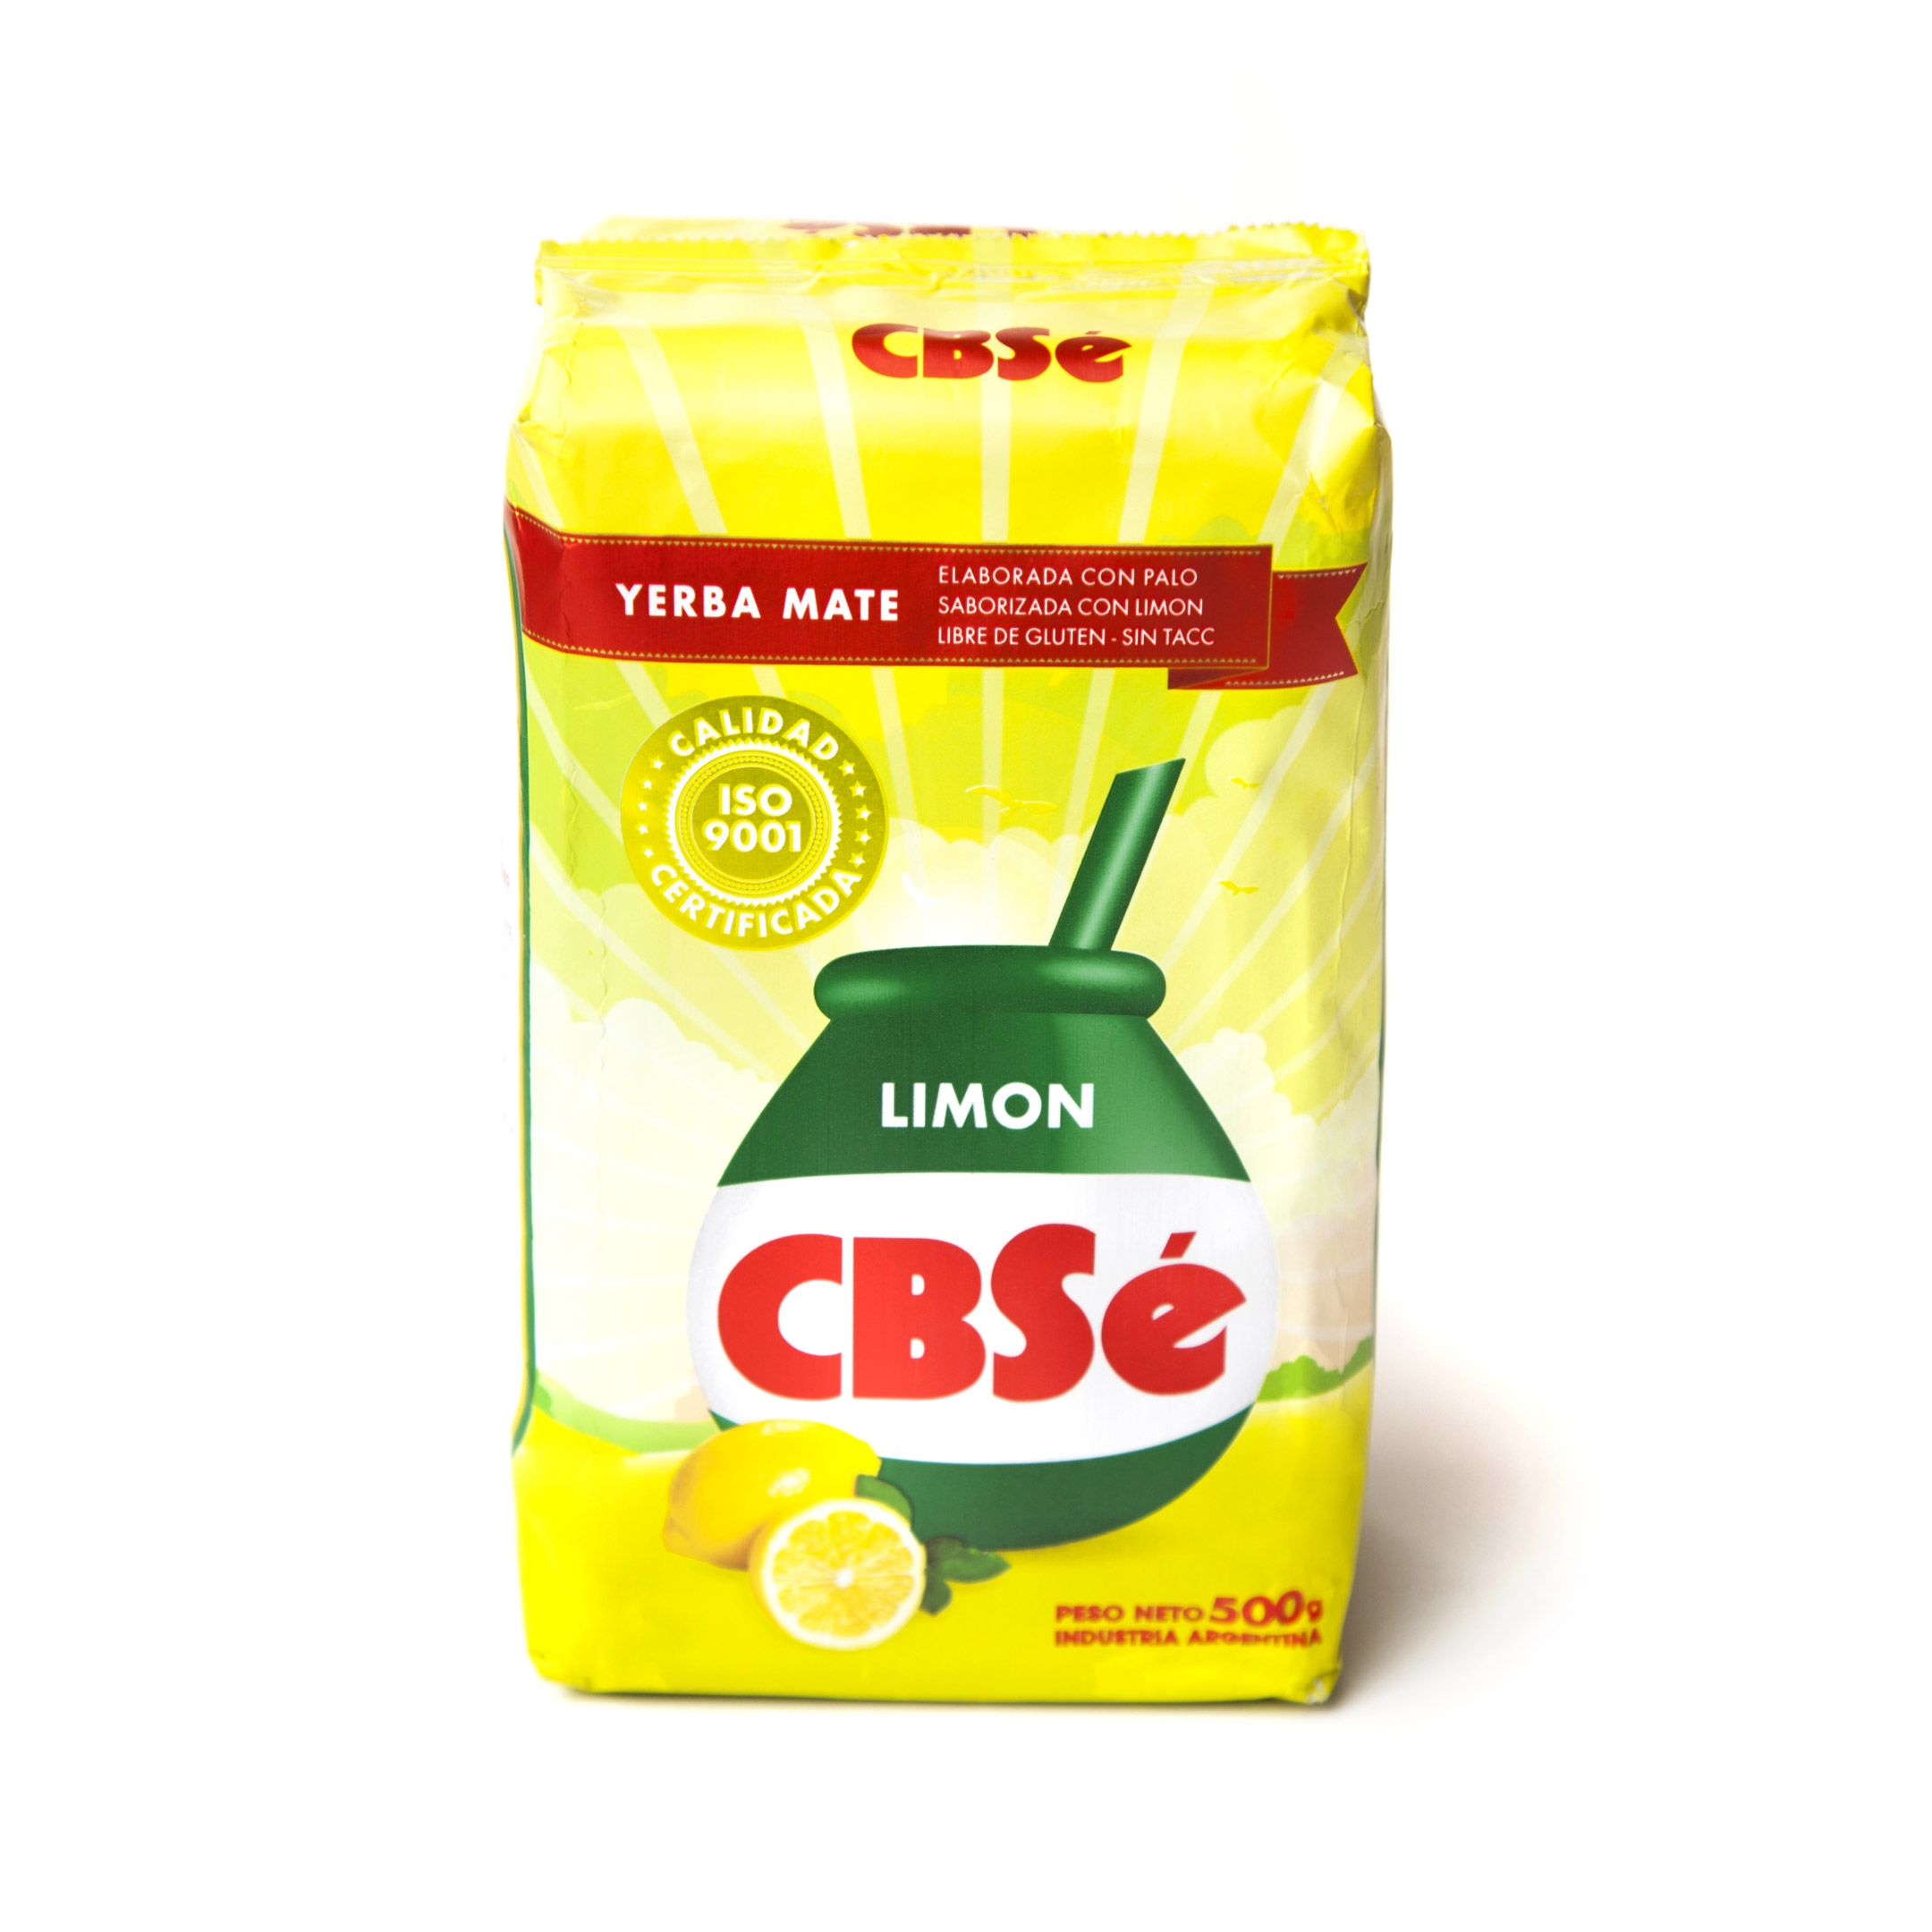 Yerba Mate - CBSE - Limon | Lemon